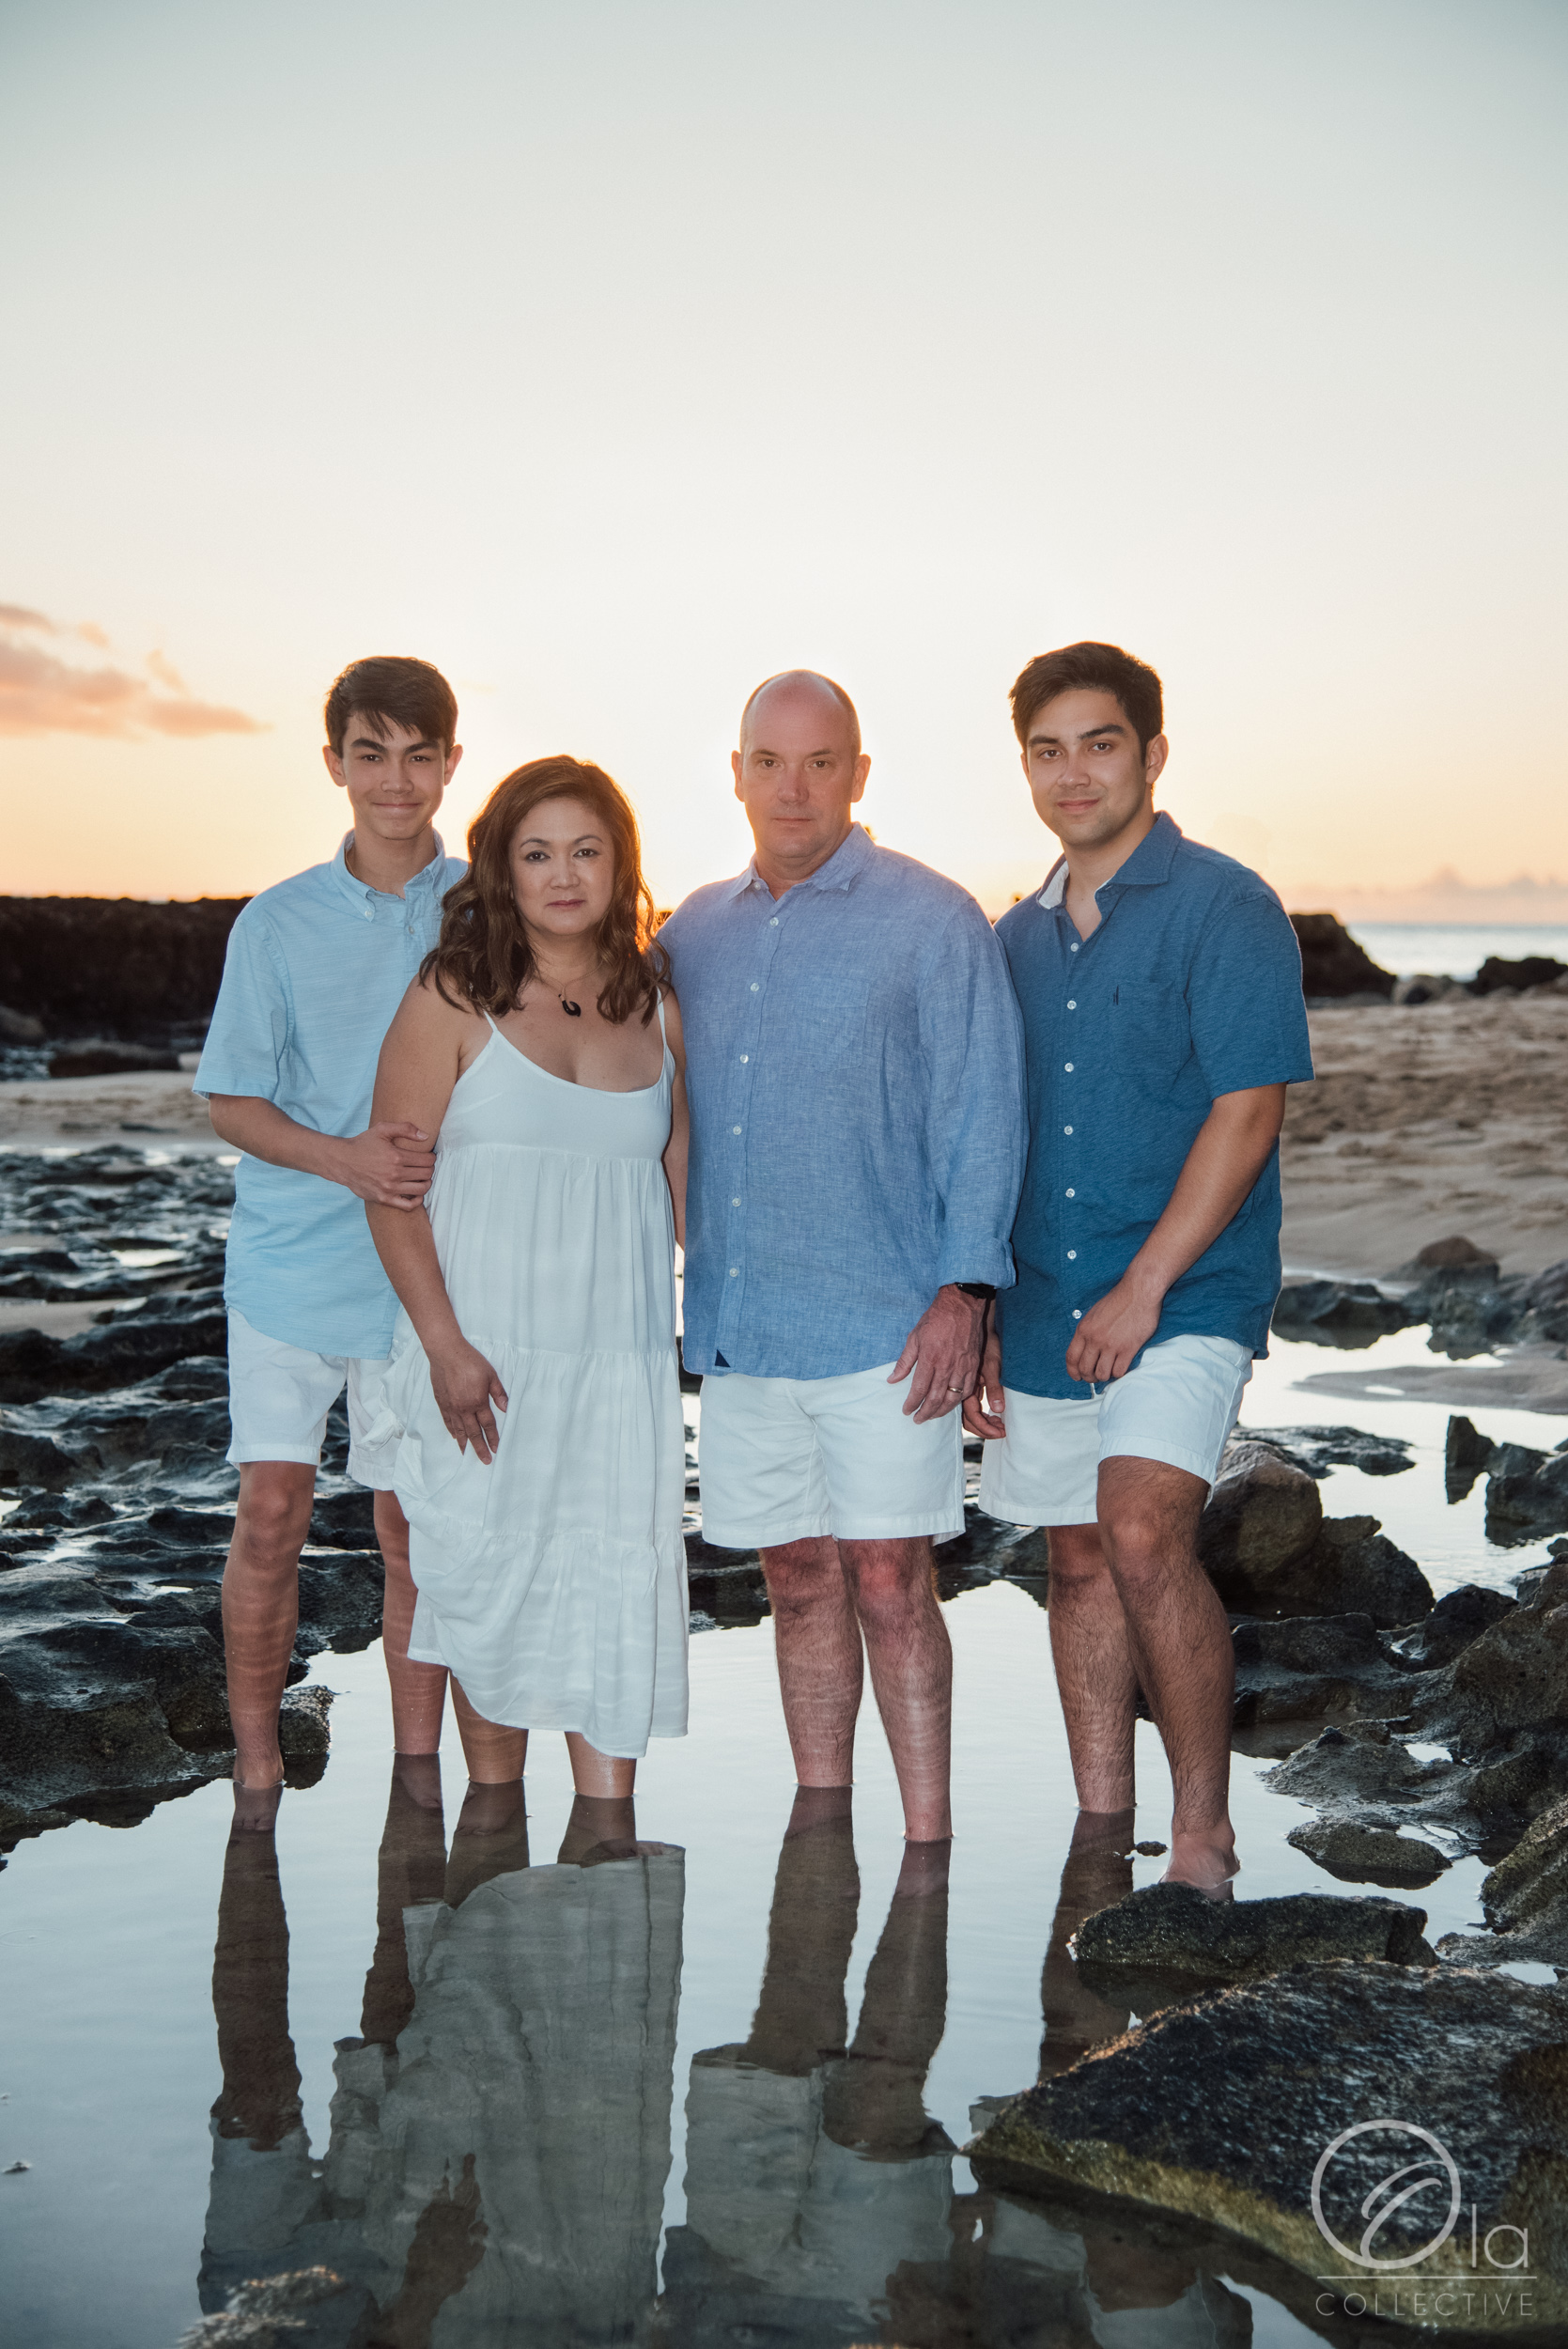 Four-Seasons-Oahu-Family-Photographer-Ola-Collective-4.jpg